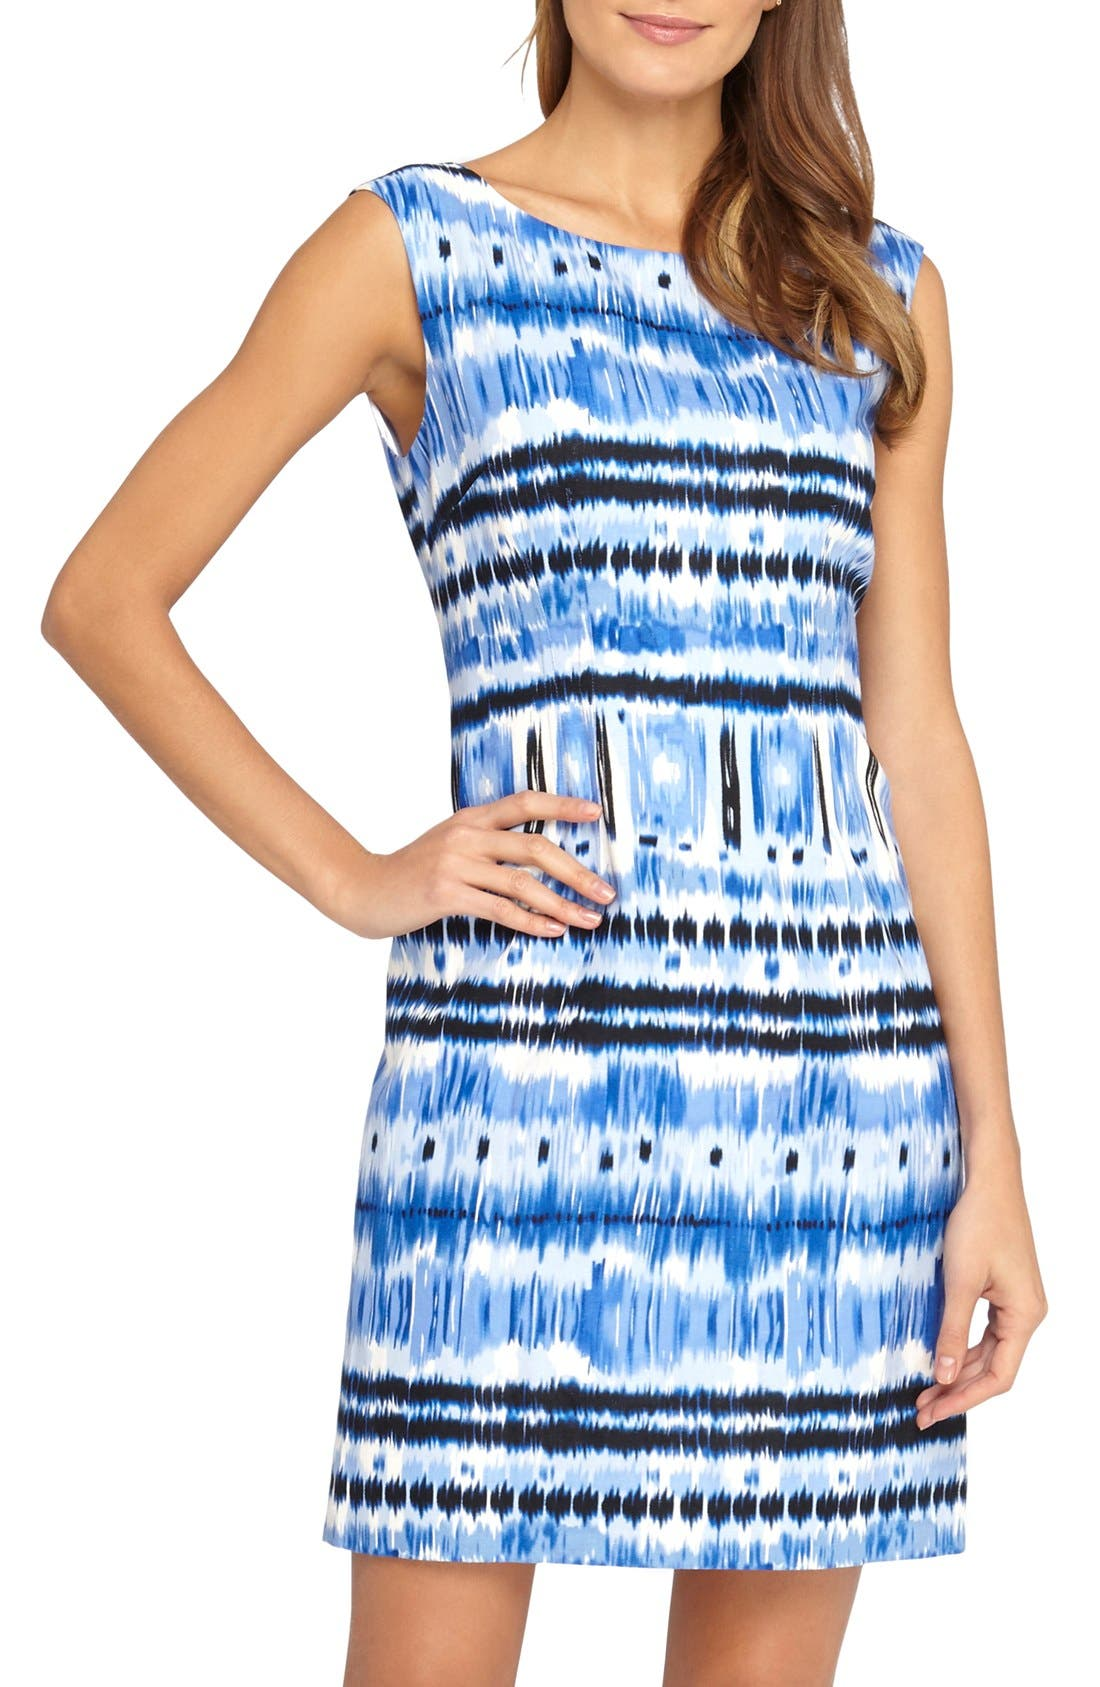 Alternate Image 1 Selected - Tahari Ikat Print Linen Blend Sheath Dress (Petite)